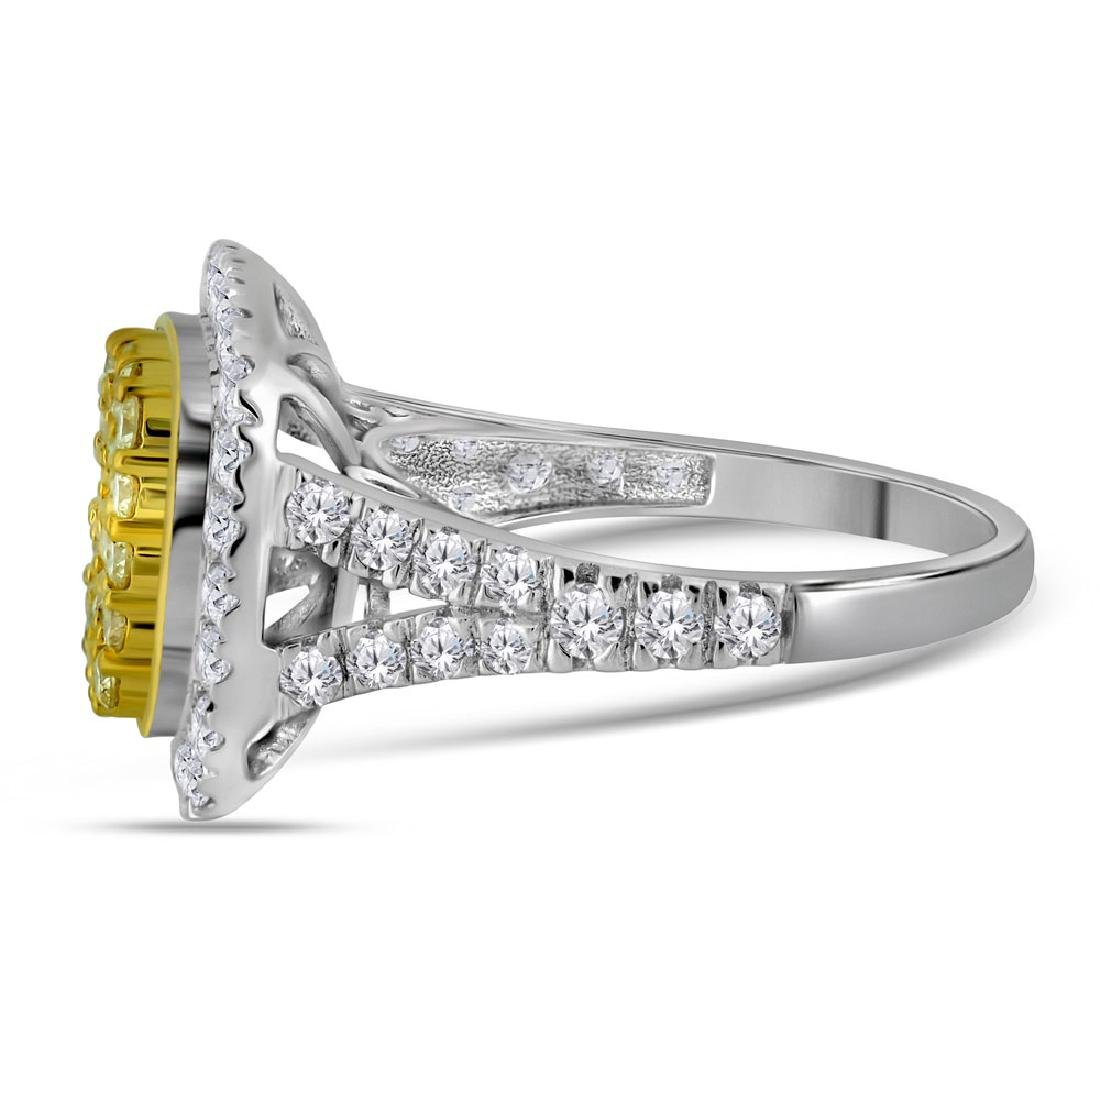 1.75 CTW Natural Yellow Diamond Cluster Ring 14KT White - 2